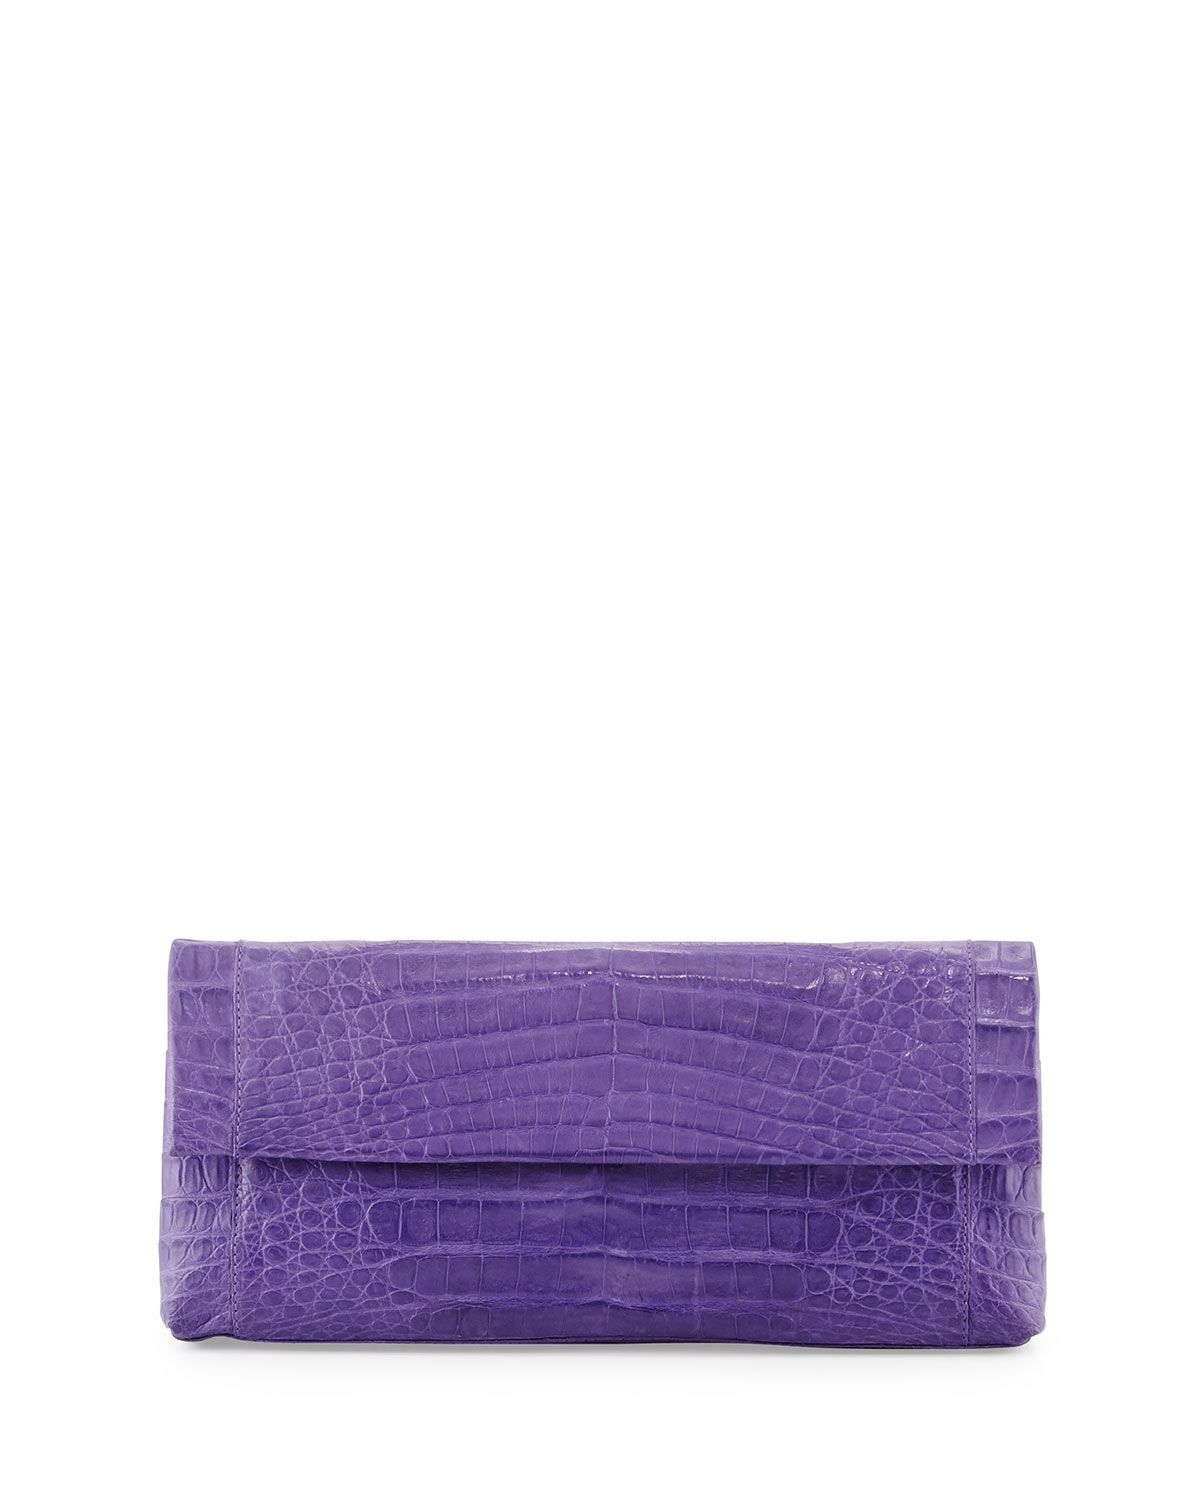 Nancy Gonzalez Crocodile Case - Purple KOJv64XOh